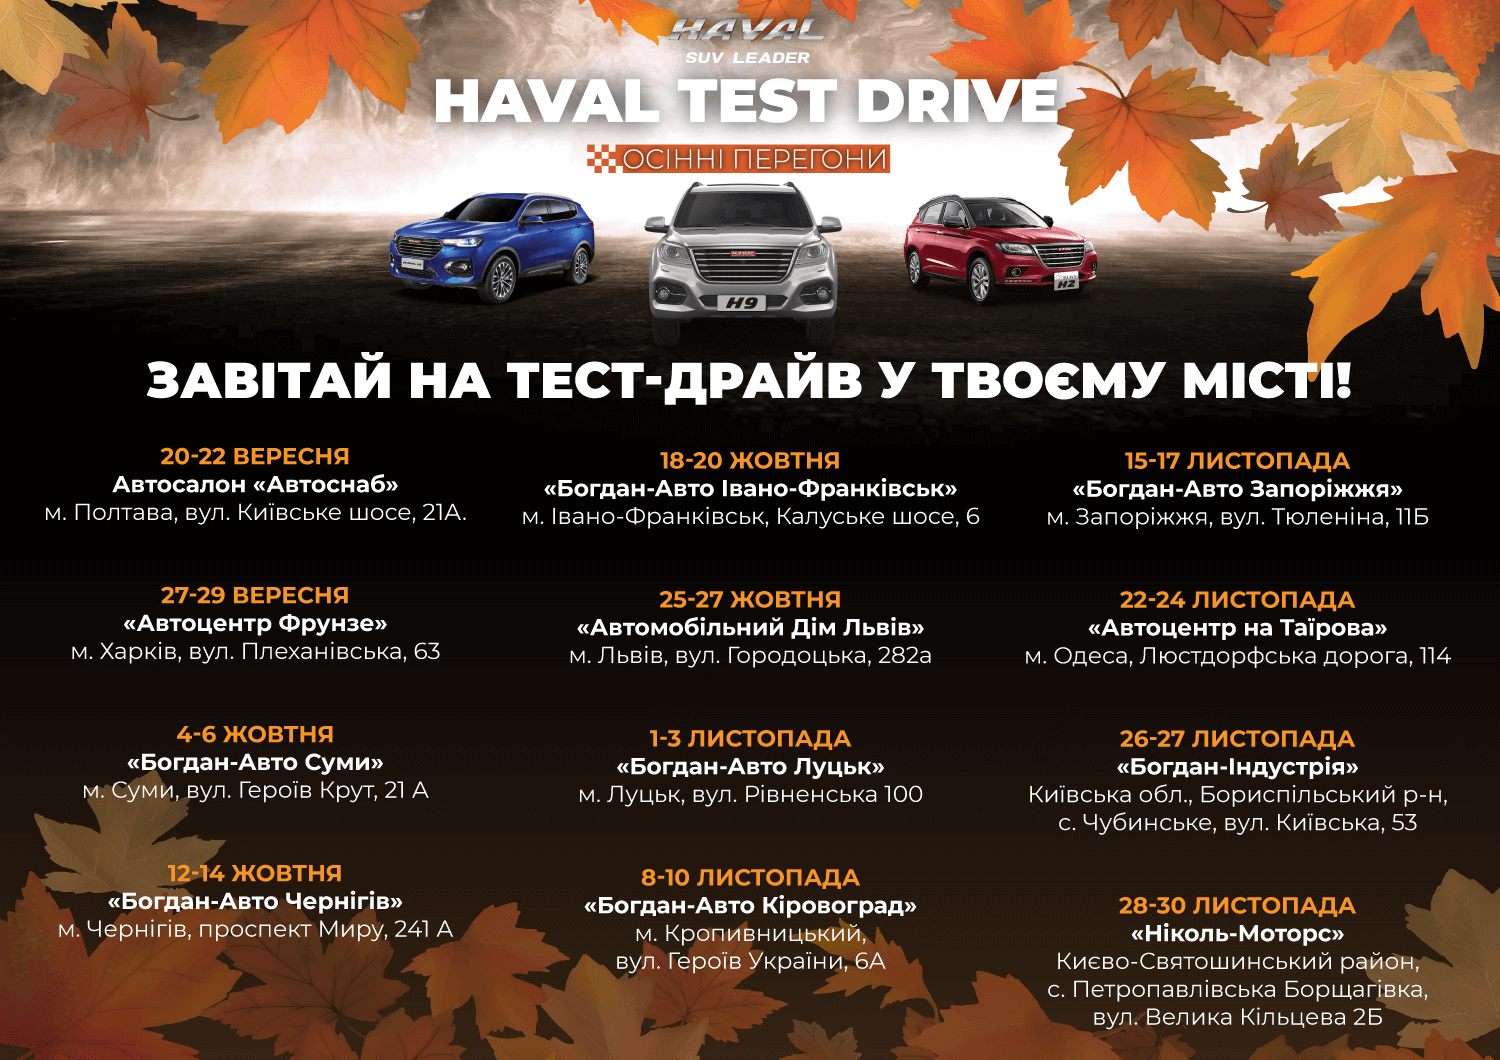 haval test-drive